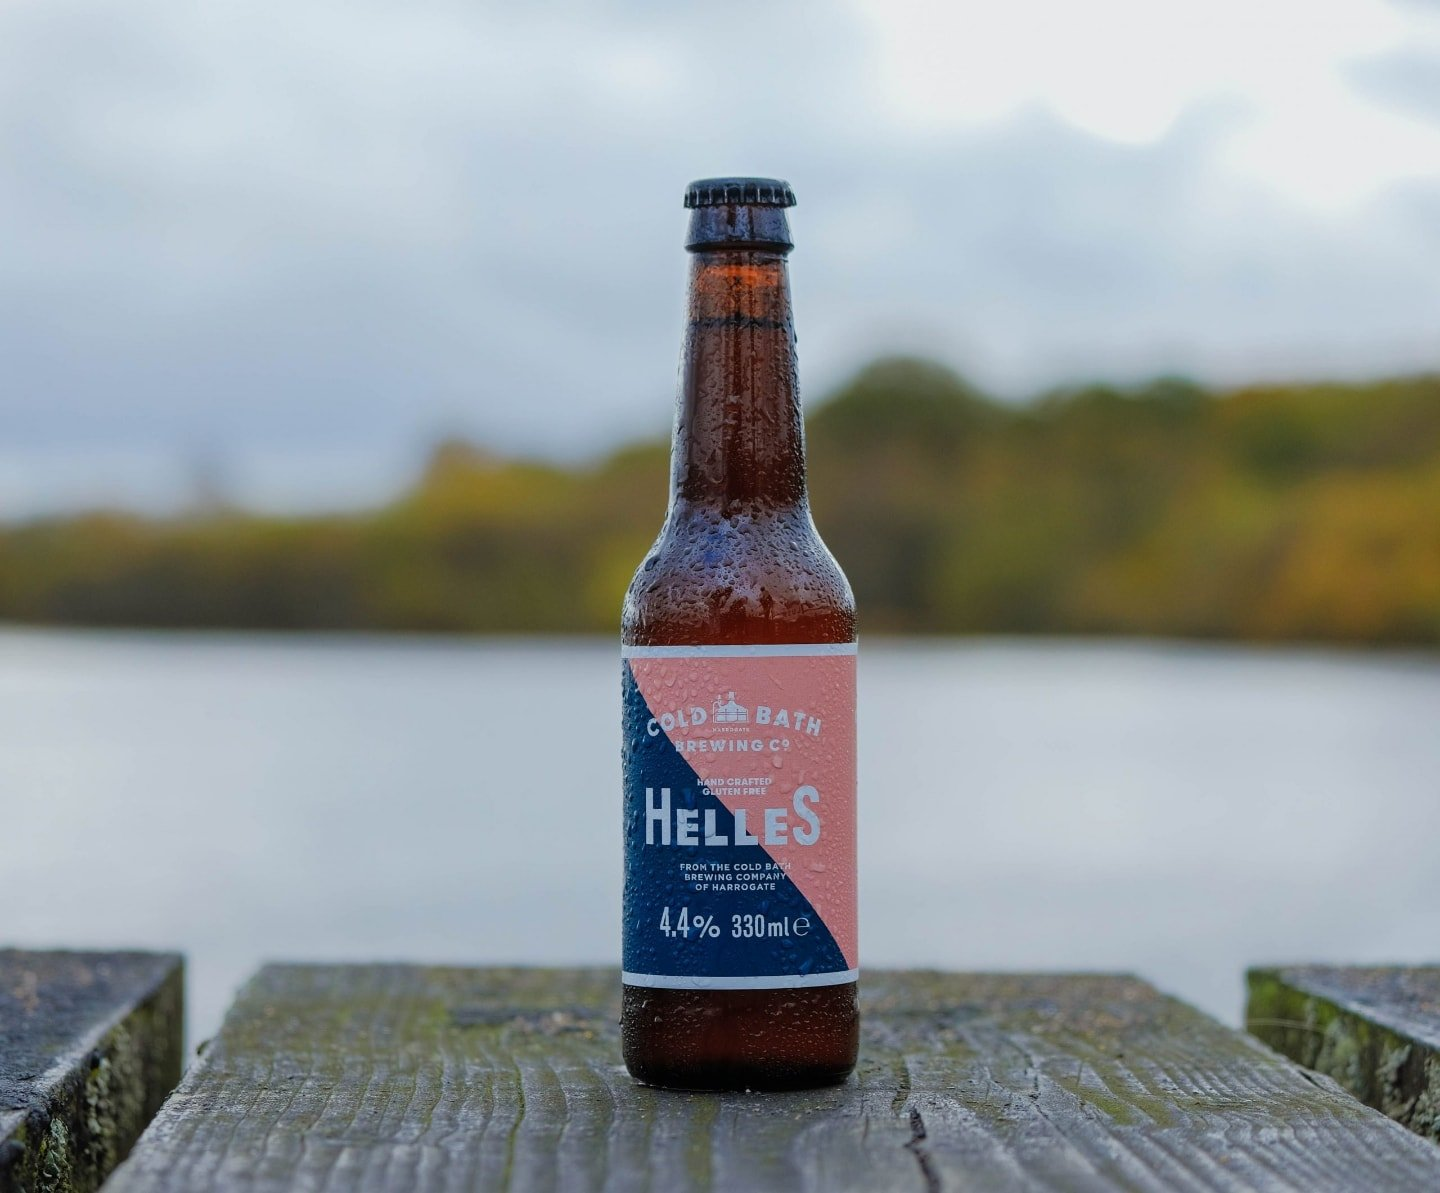 Cold Bath Brewing Co Hand Crafted Helles Bottles